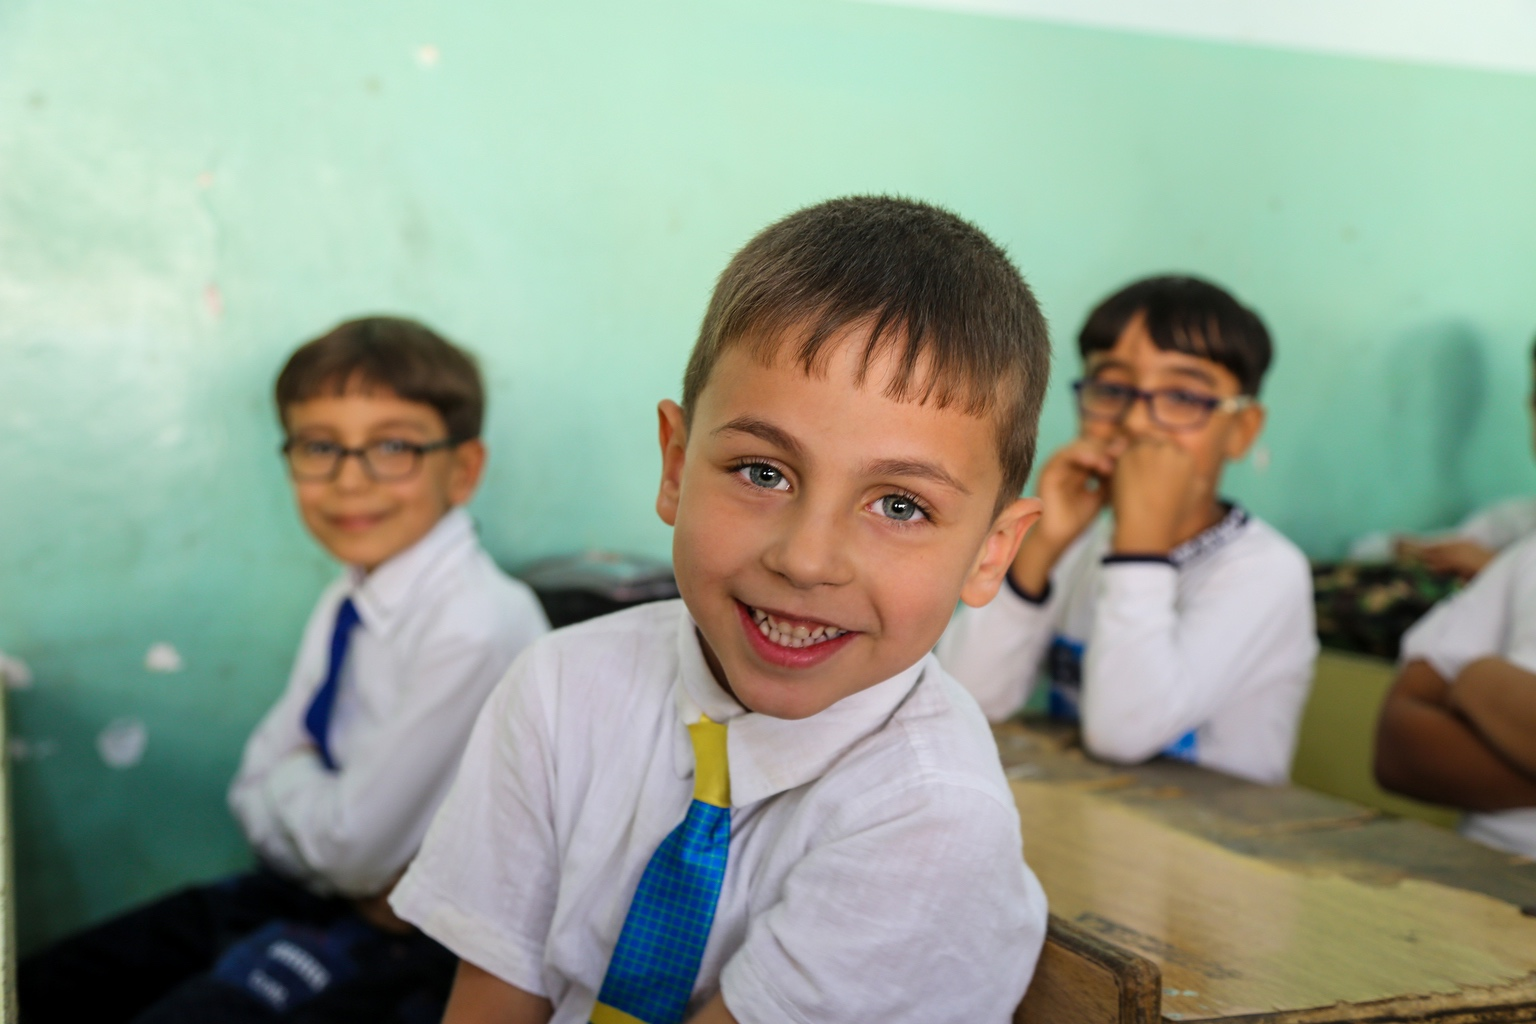 A boy in a shirt and tie in his classroom.